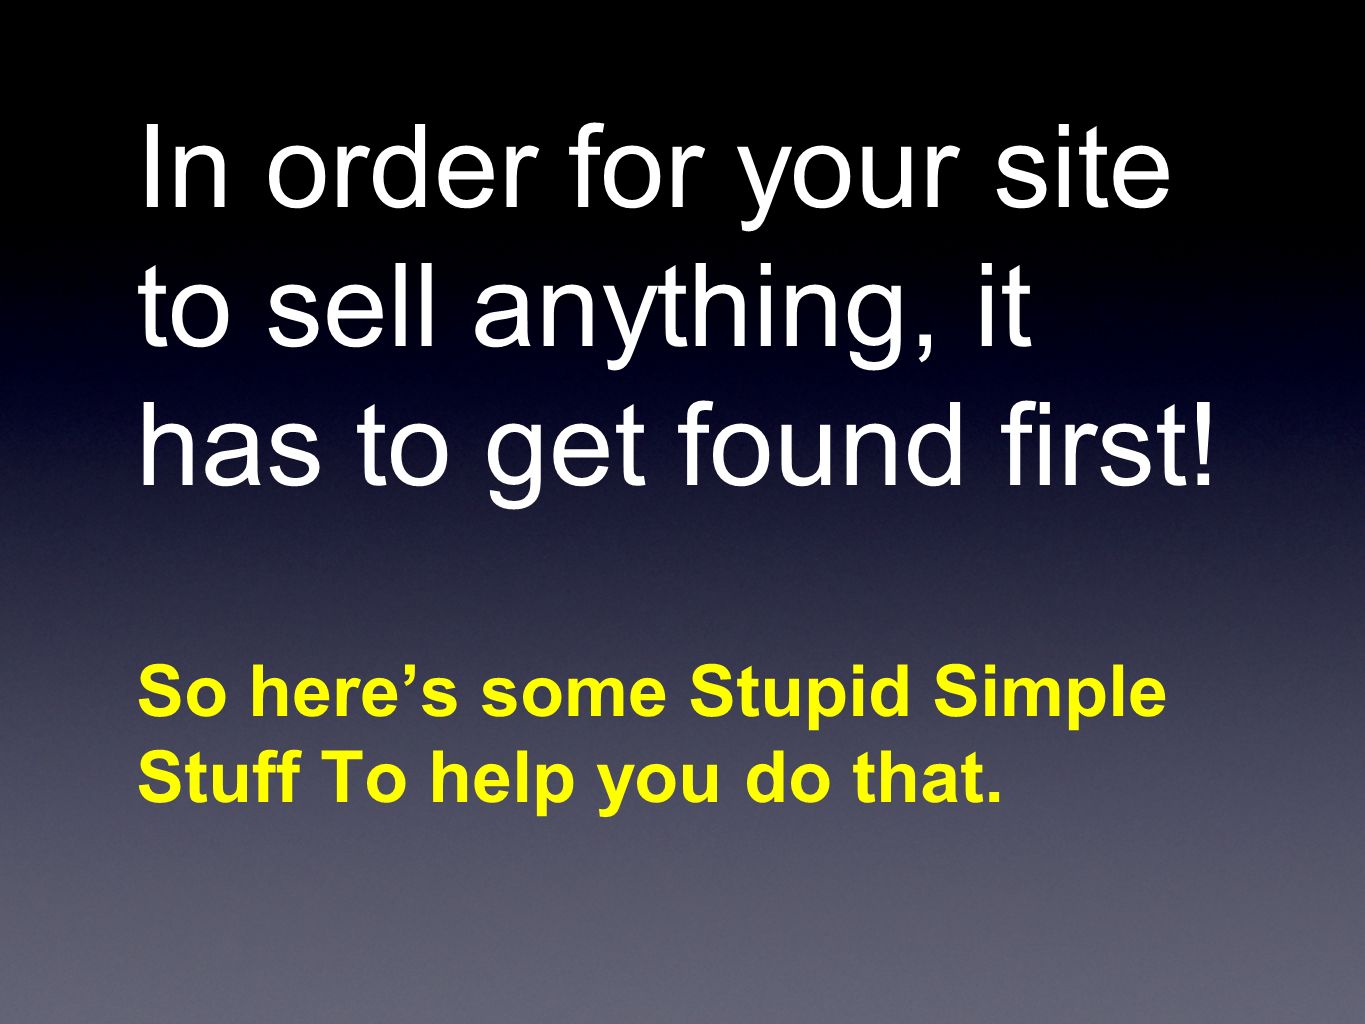 In order for your site to sell anything, it has to get found first.